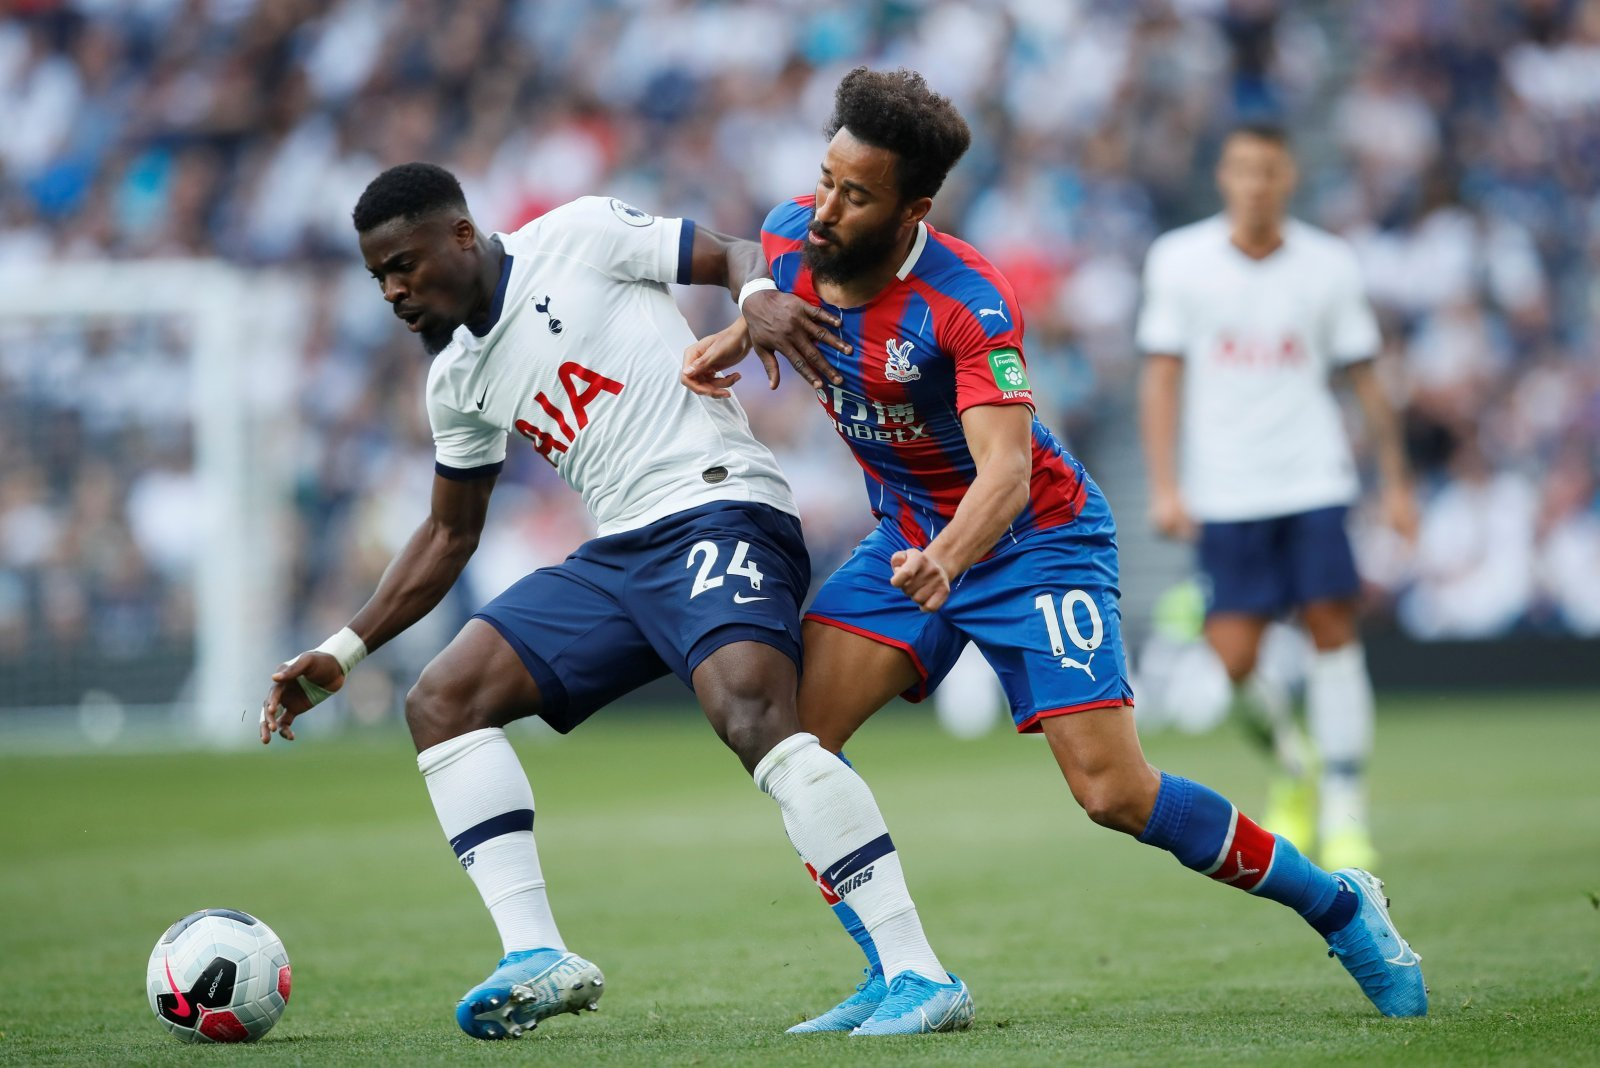 Tottenham Hotspur: Some fans feel Serge Aurier has been robbed